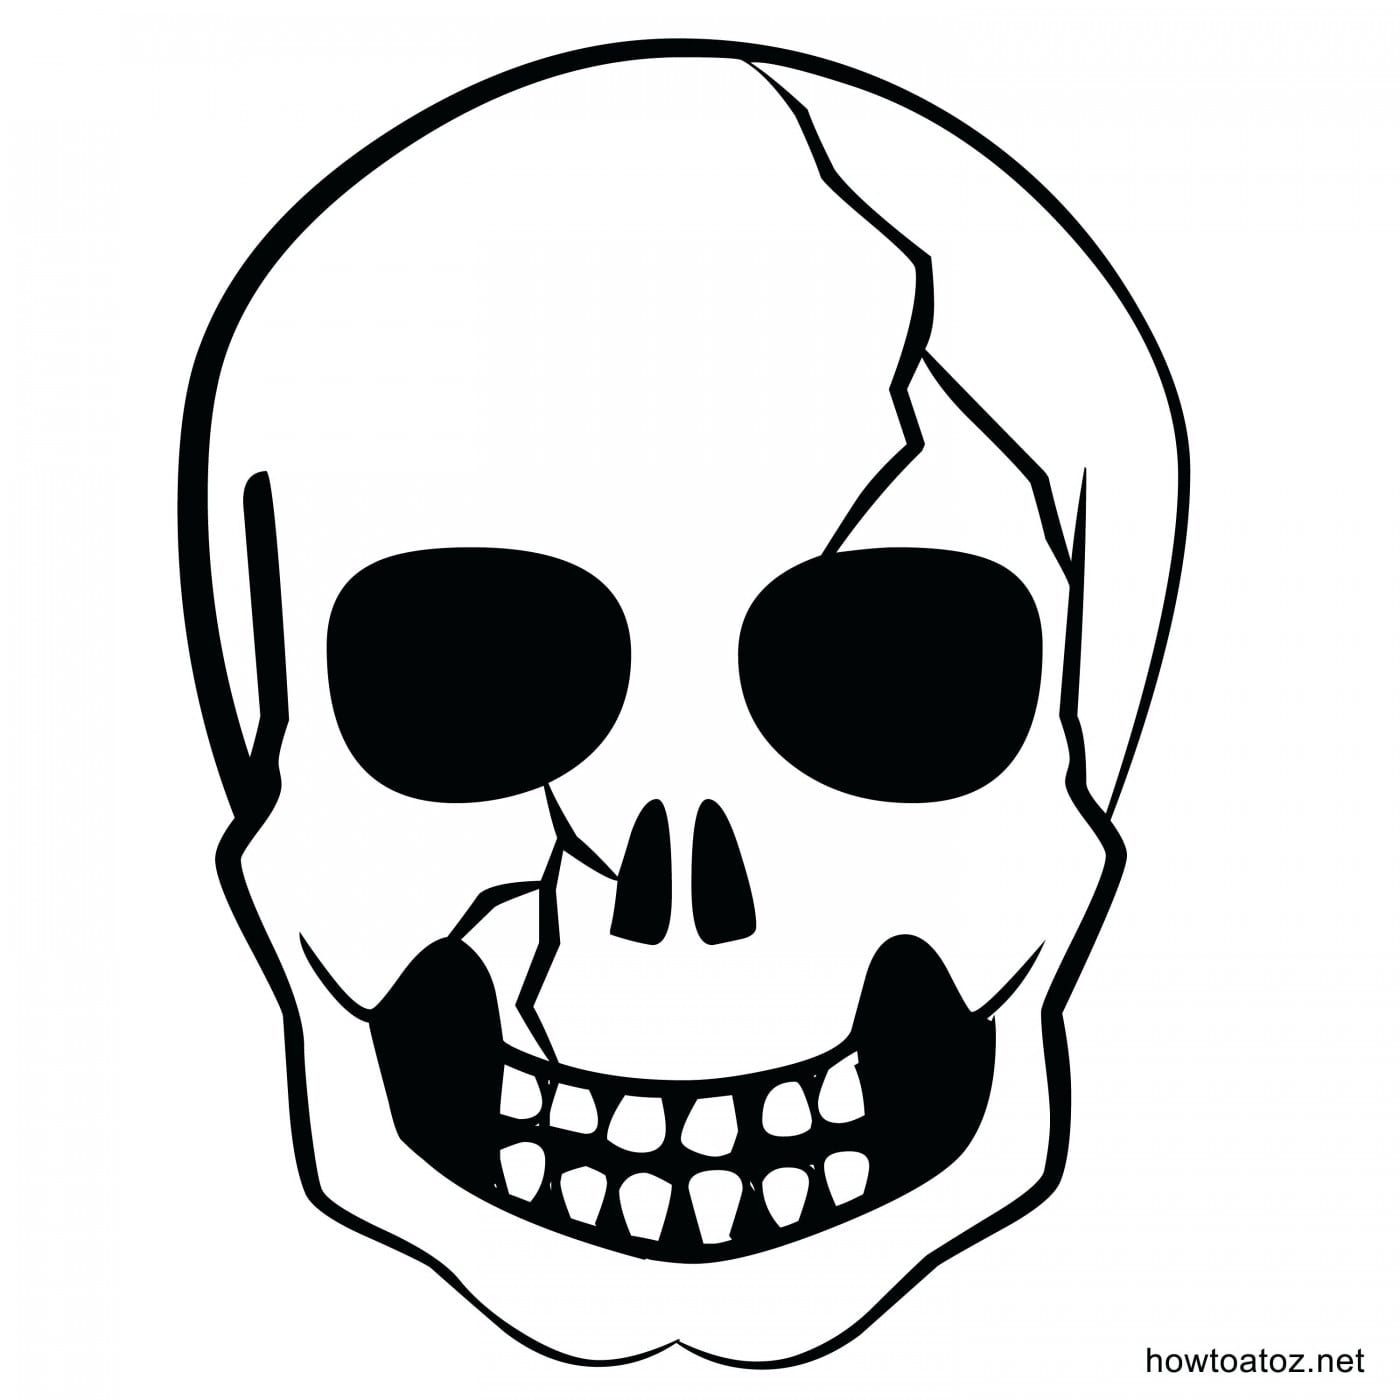 Skull Template Printable Photographic Gallery With Skull Template